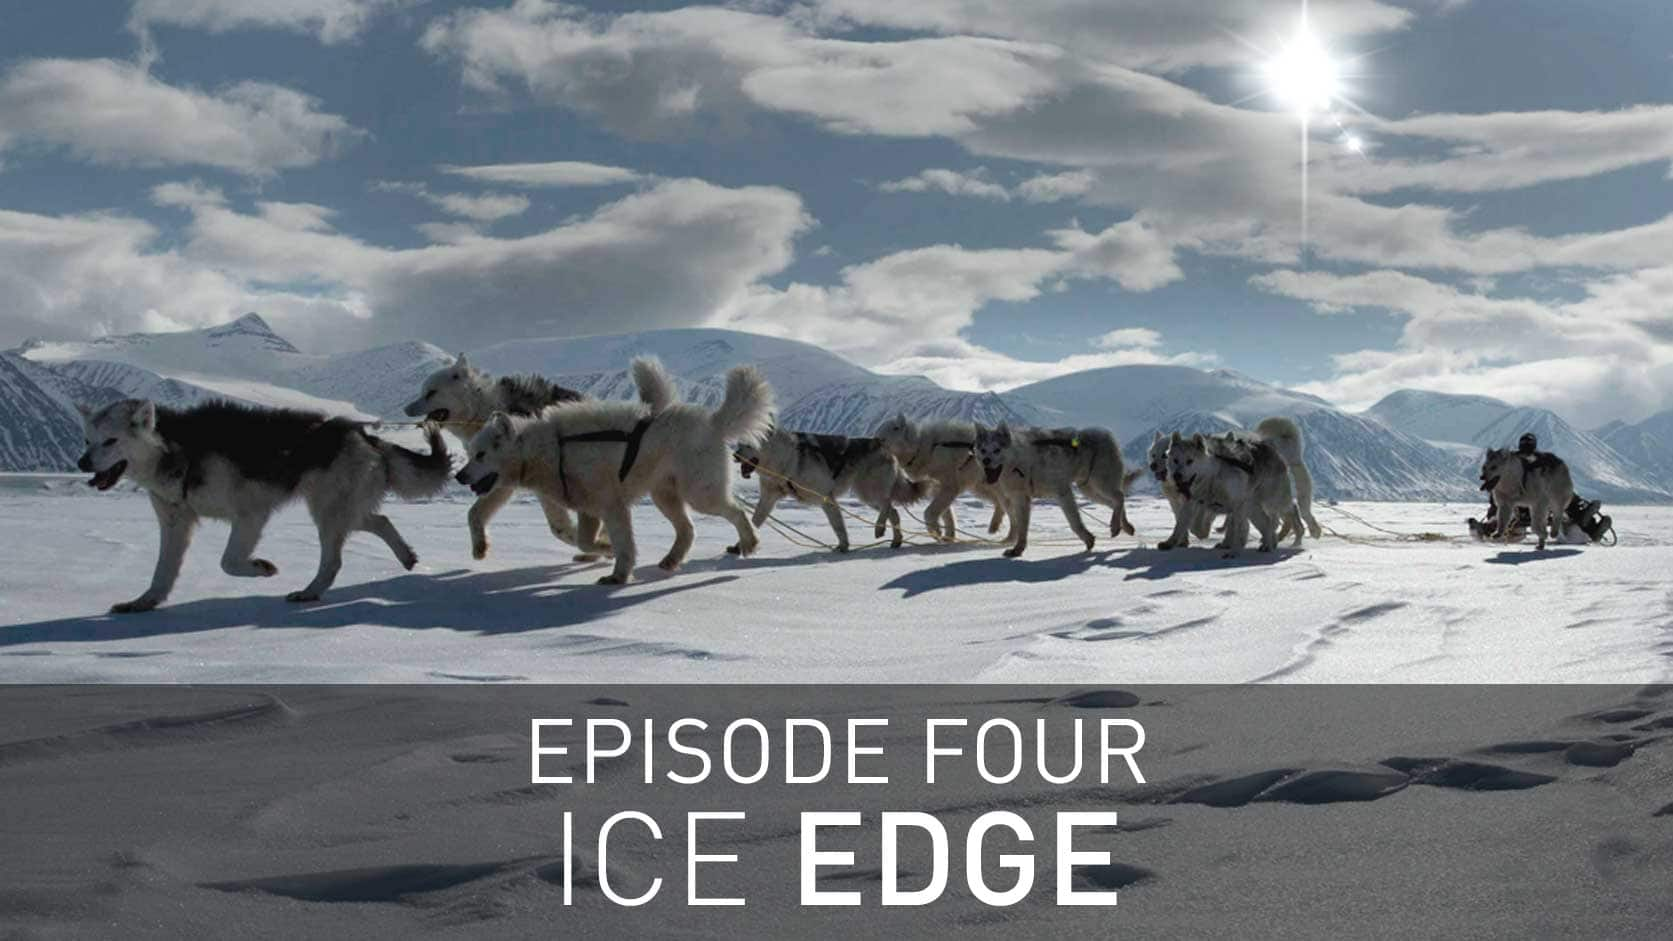 4: The Ice Edge